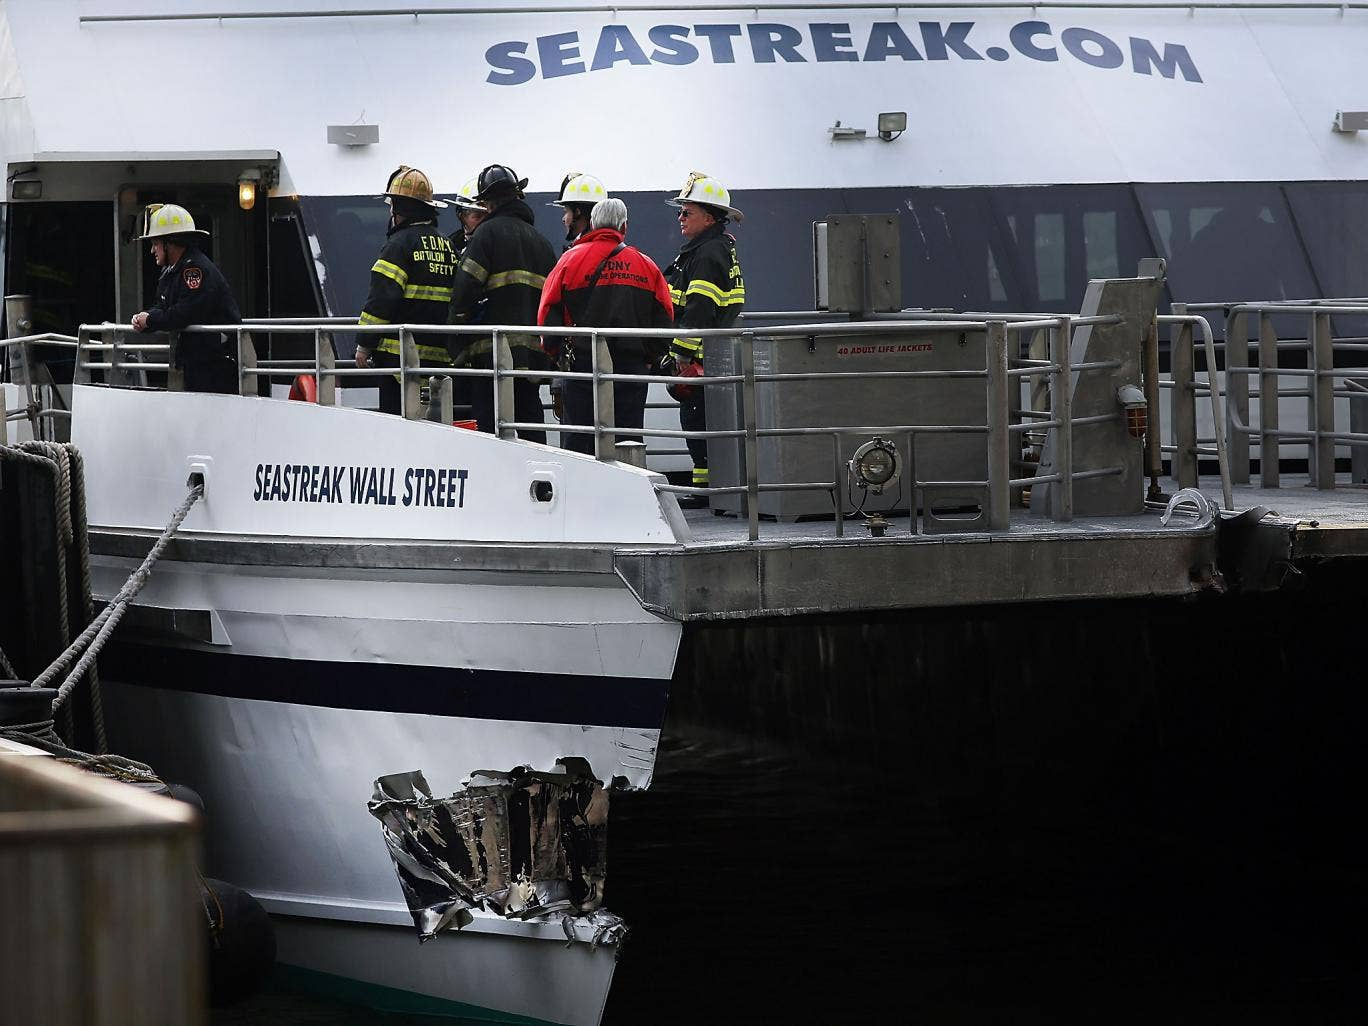 A gash in the Seastreak ferry after an early morning accident during rush hour in Lower Manhattan